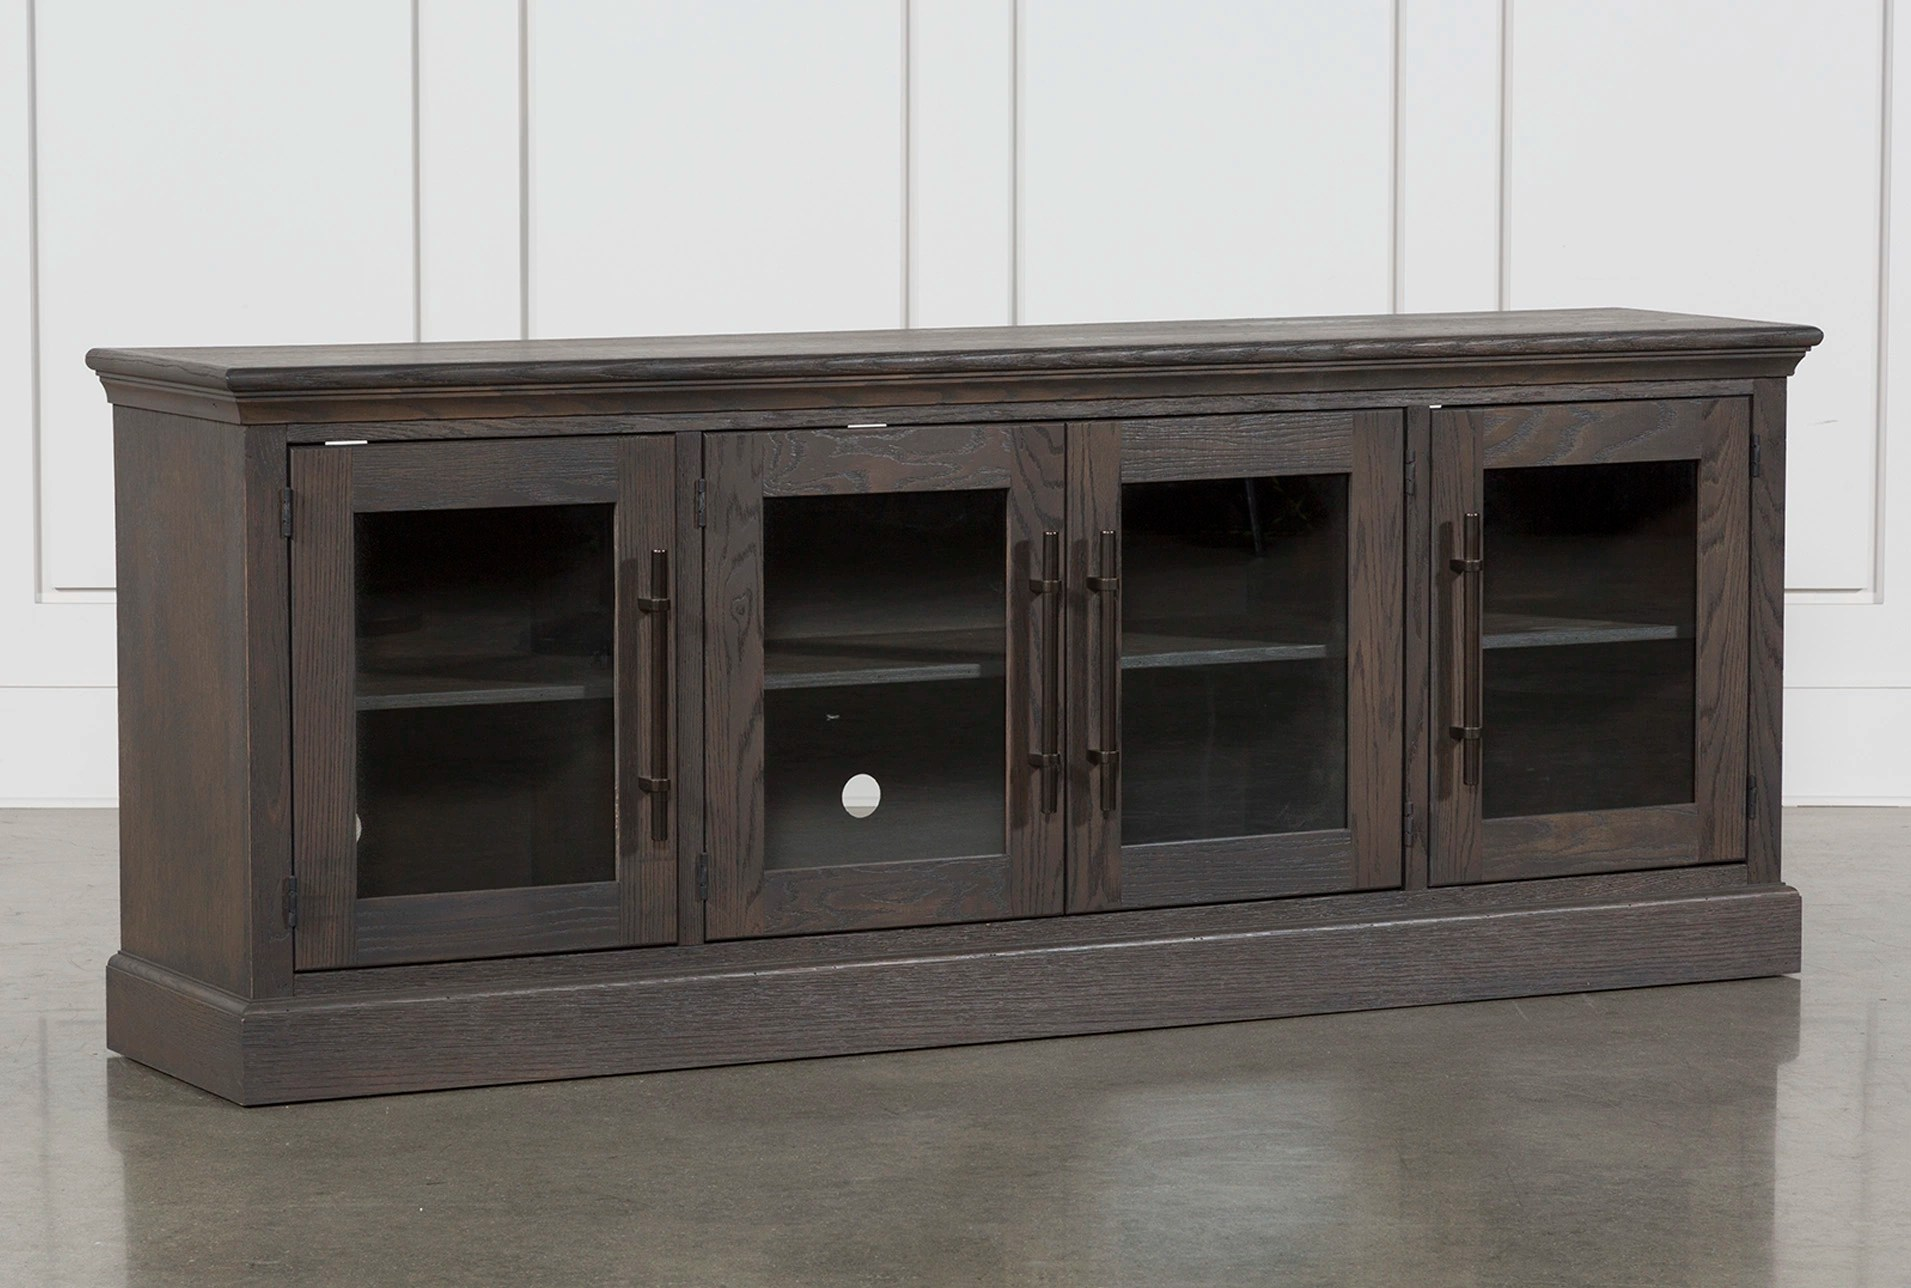 tv stands for living room modern wall color ideas wakefield 85 inch stand spaces 360